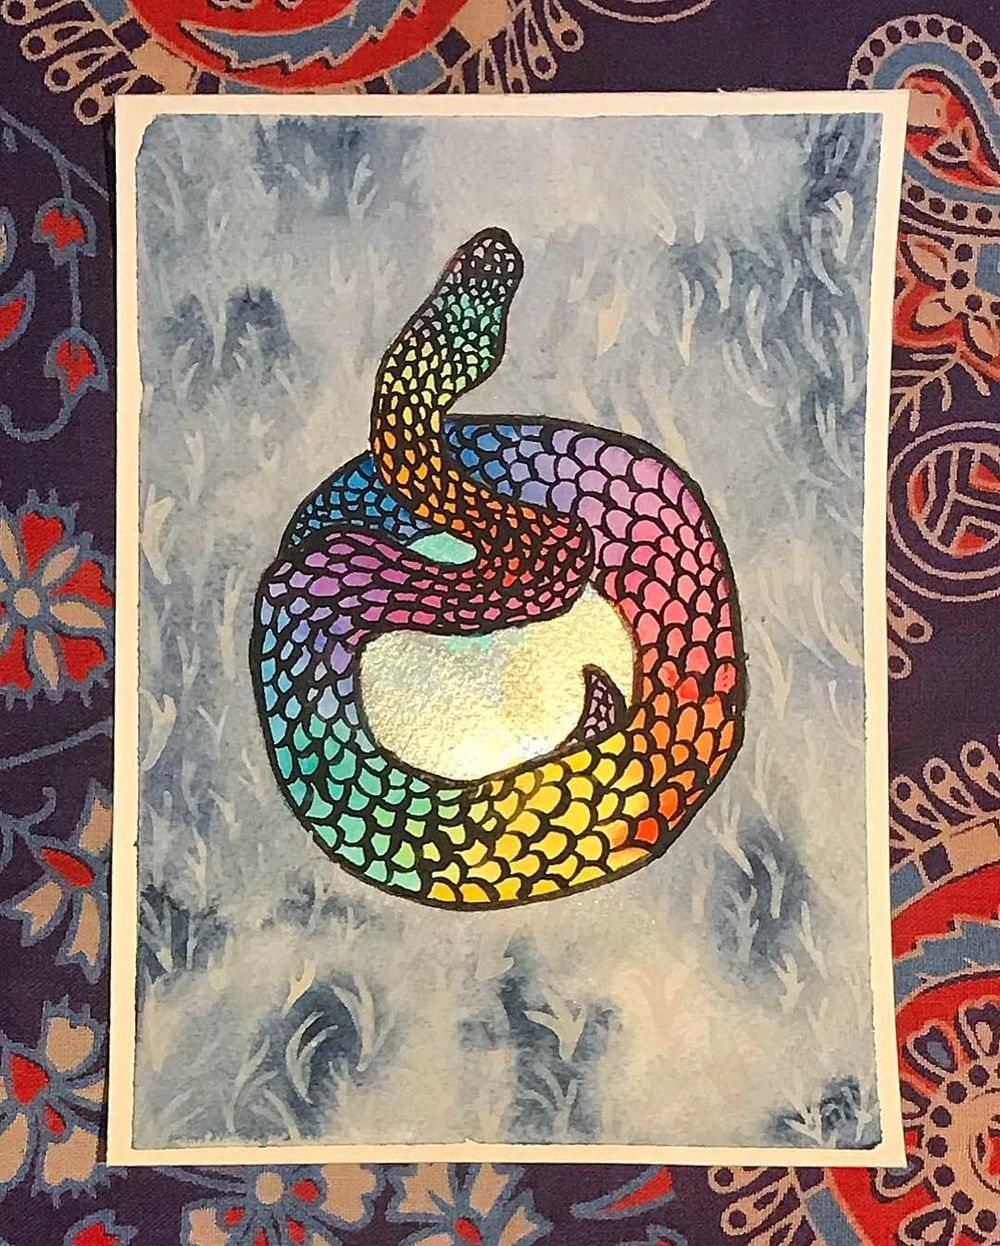 Metallic pythons and eggs - image 5 - student project